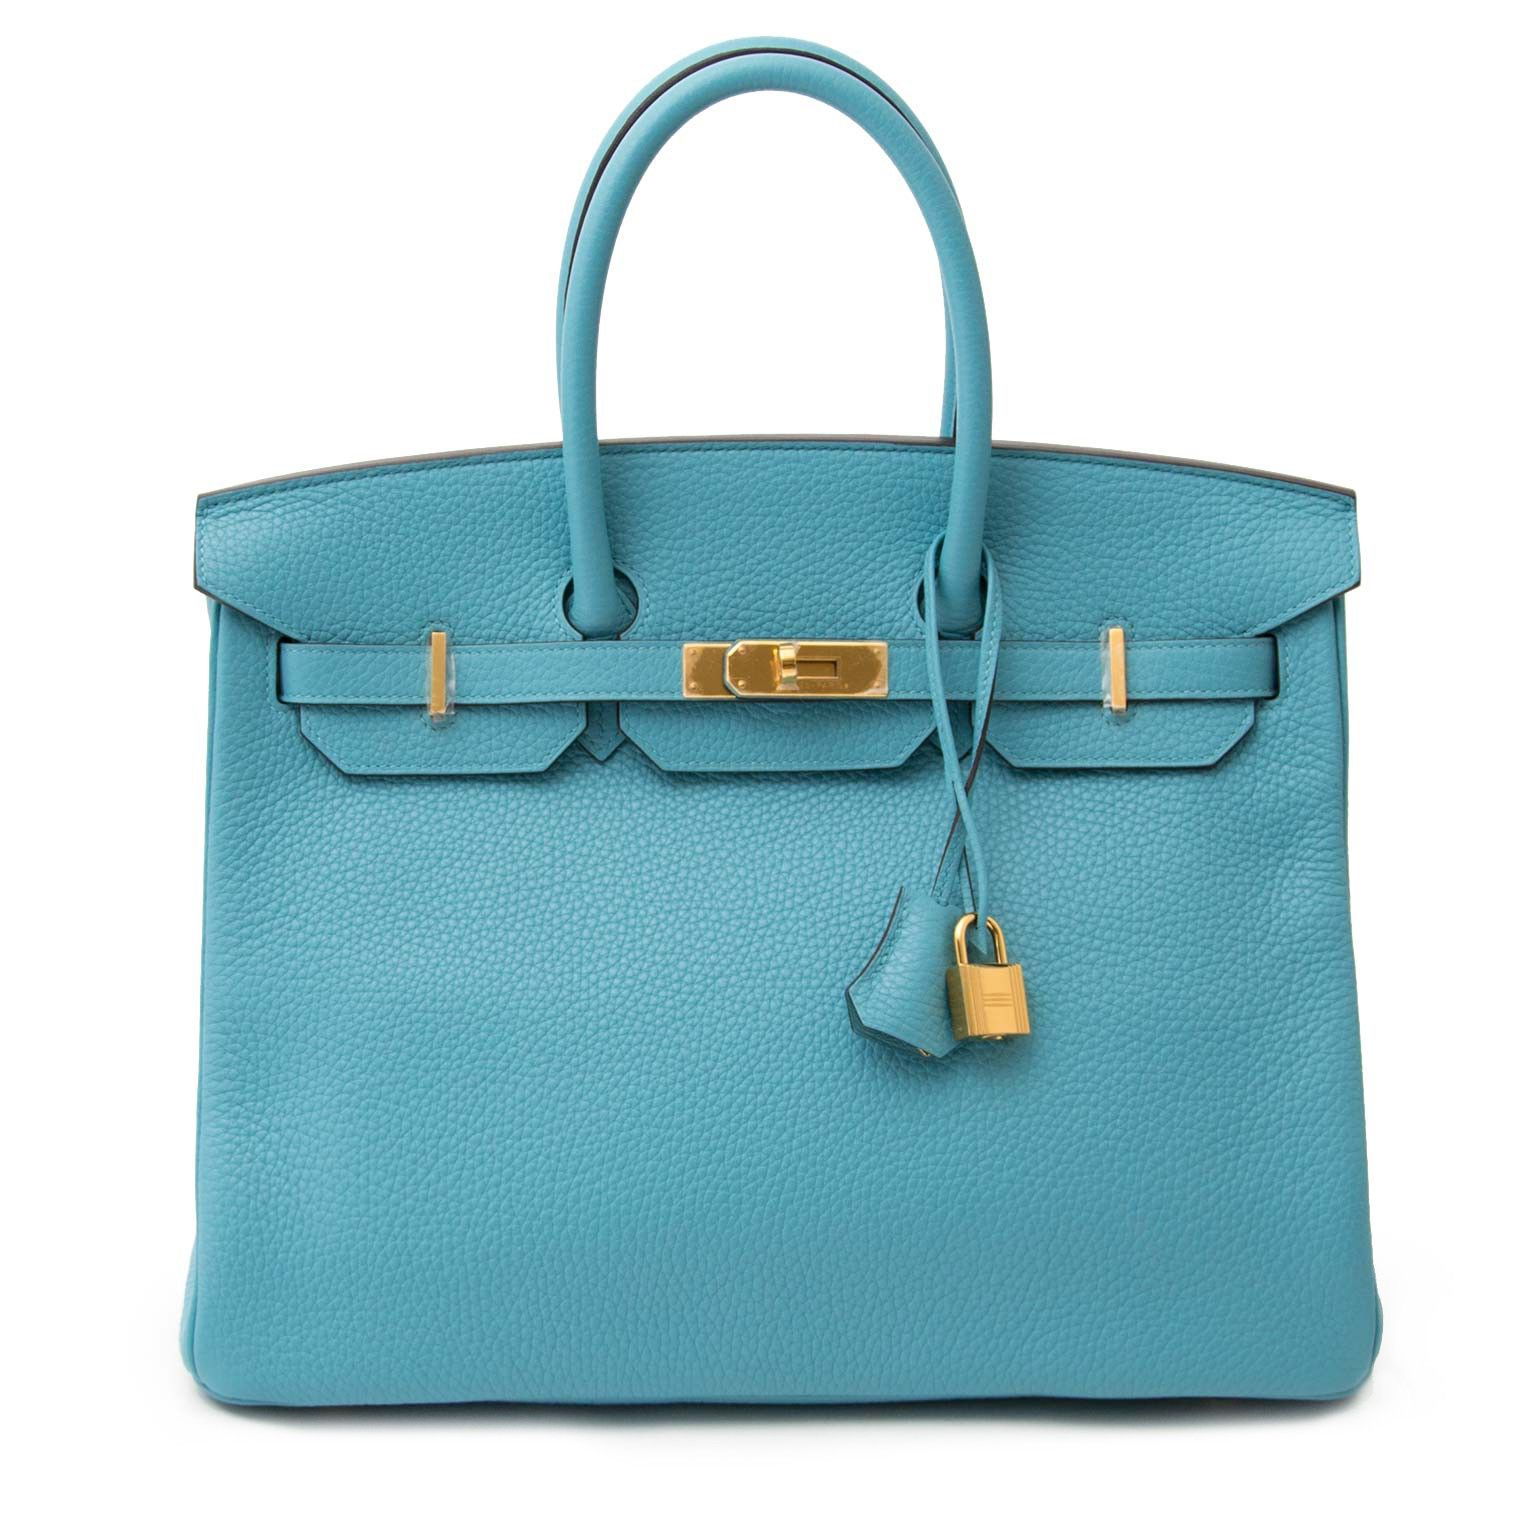 a951c9c5829 100% authentic hermes birkin bags now at labellov.com